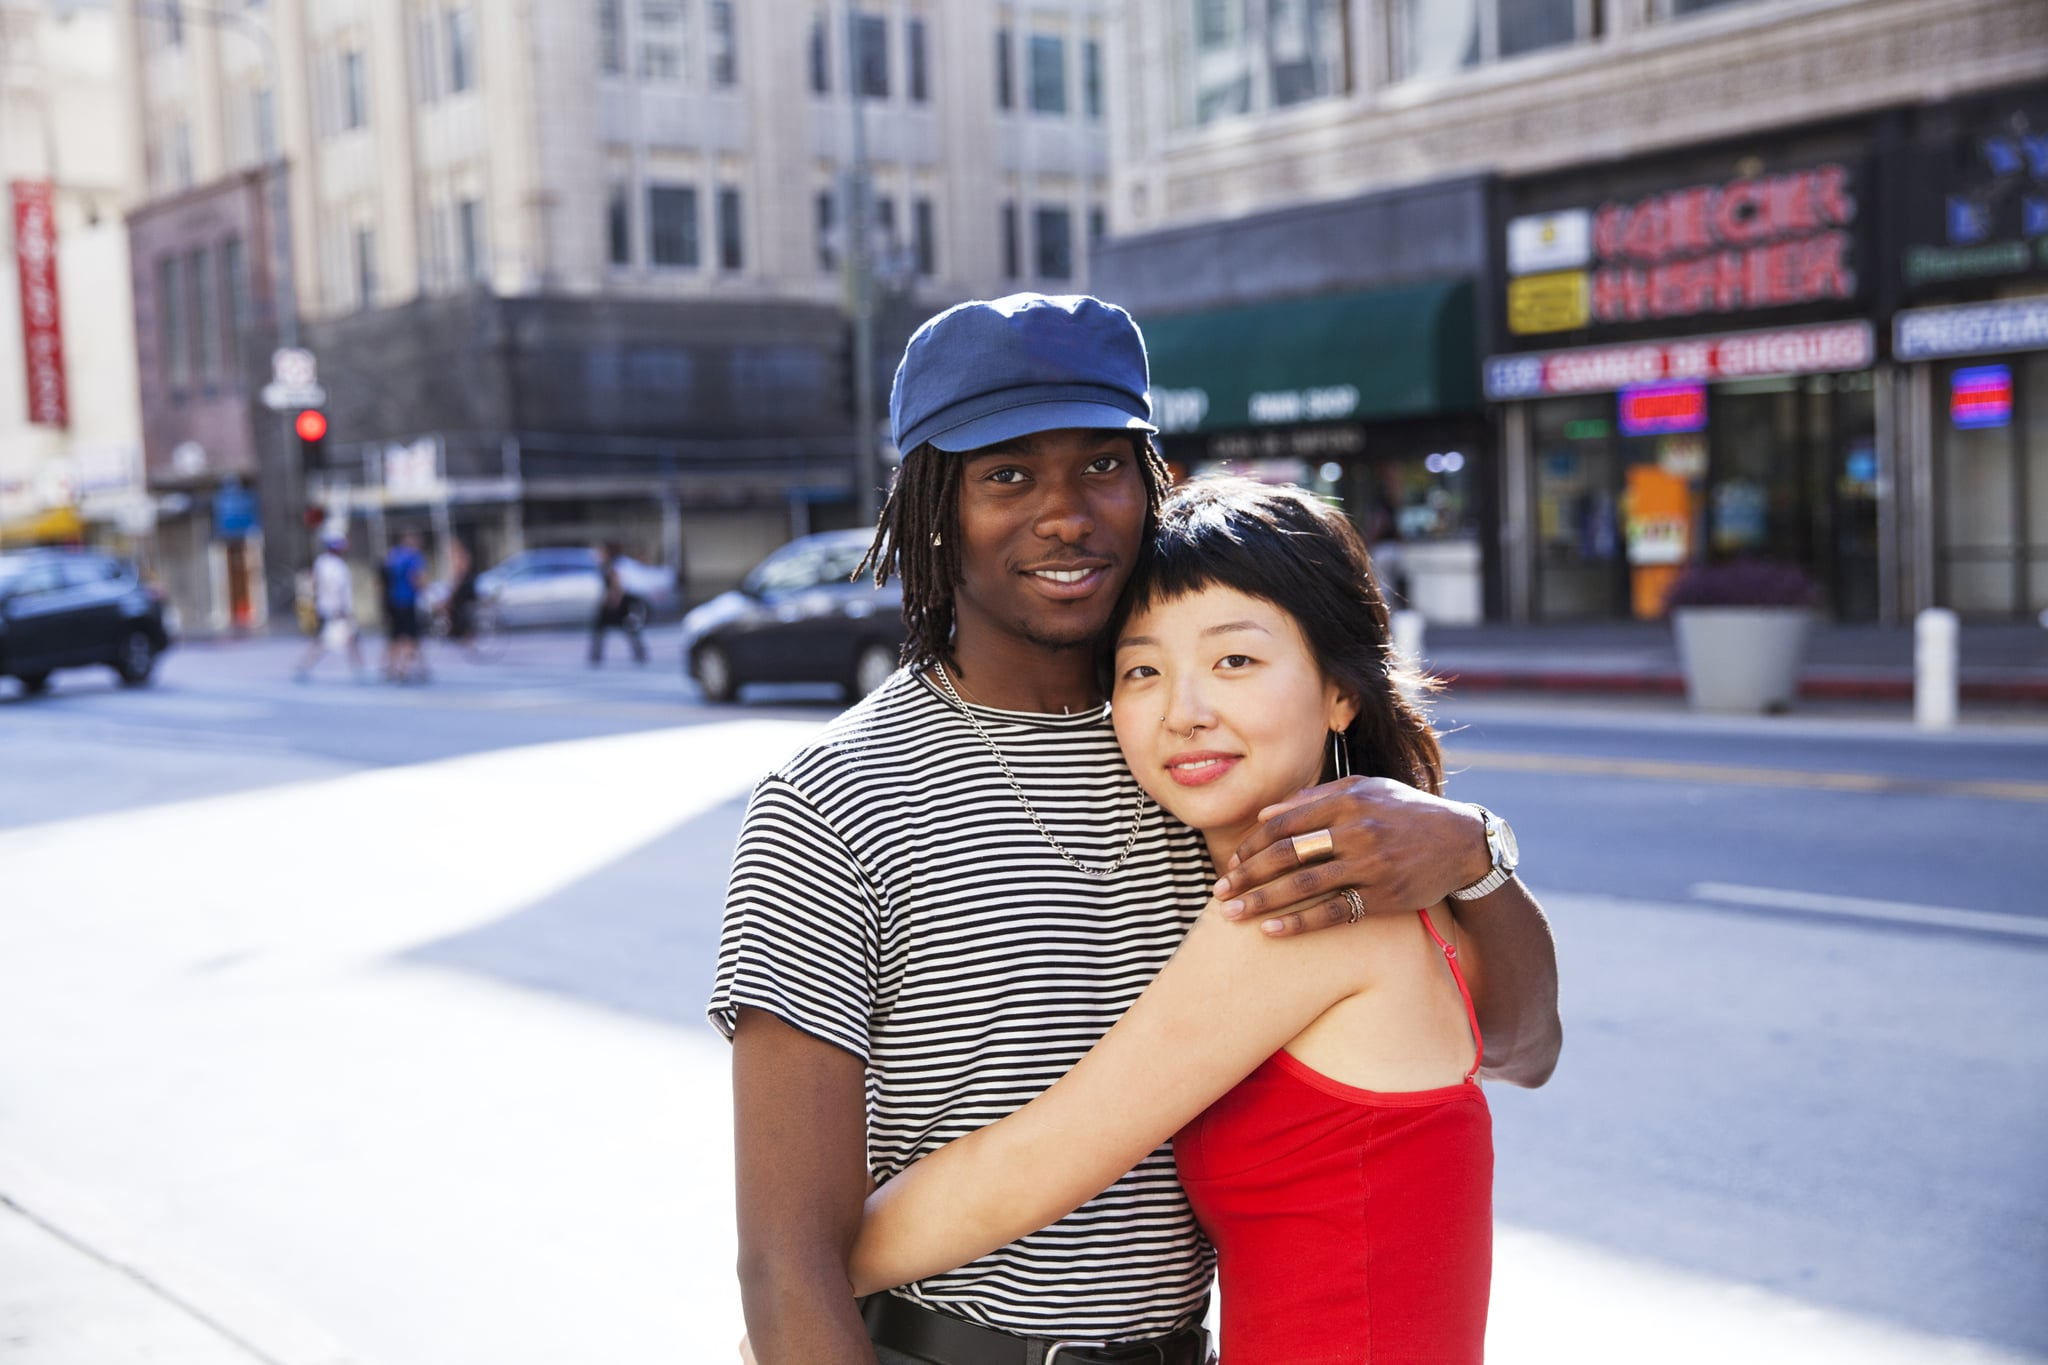 a young couple showing affection while looking at the camera and smiling with a city street scene in the background